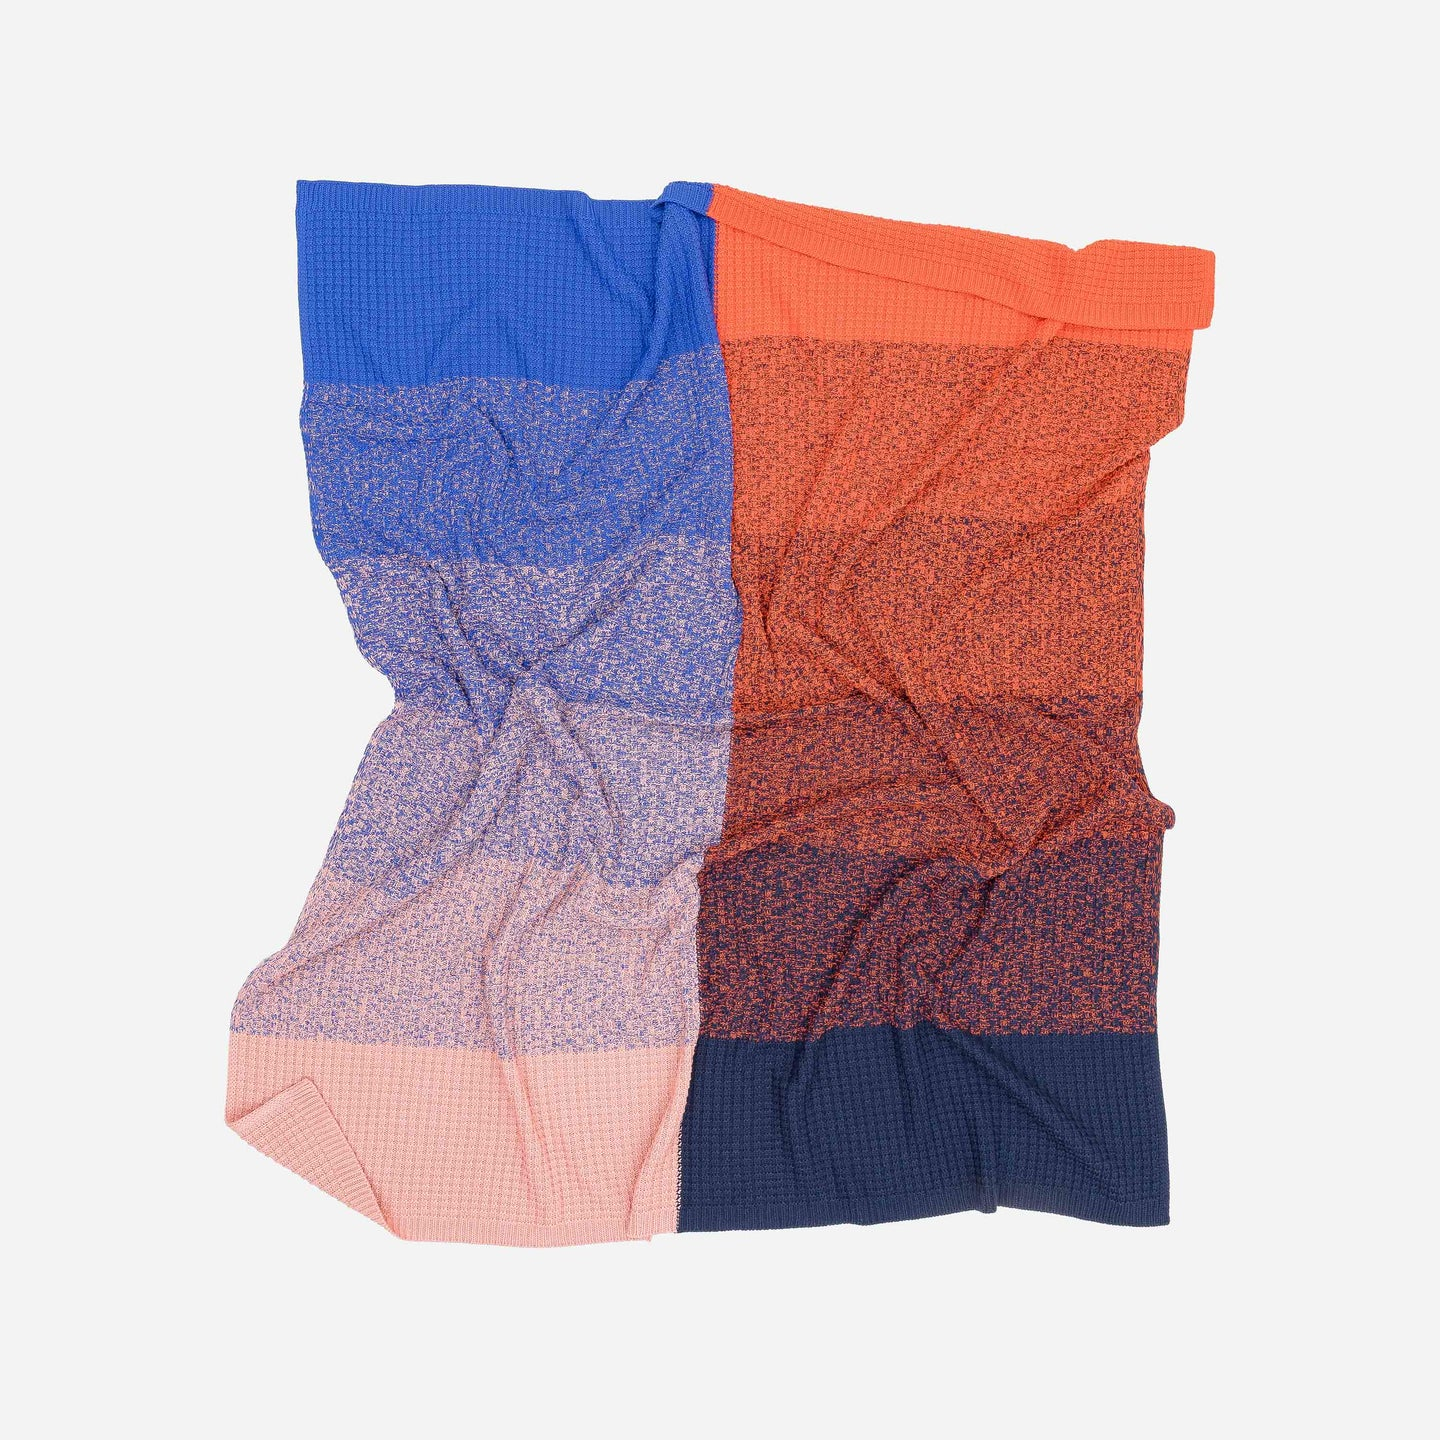 Sunrise Sunset Gradient Ombre Knit Throw Blanket